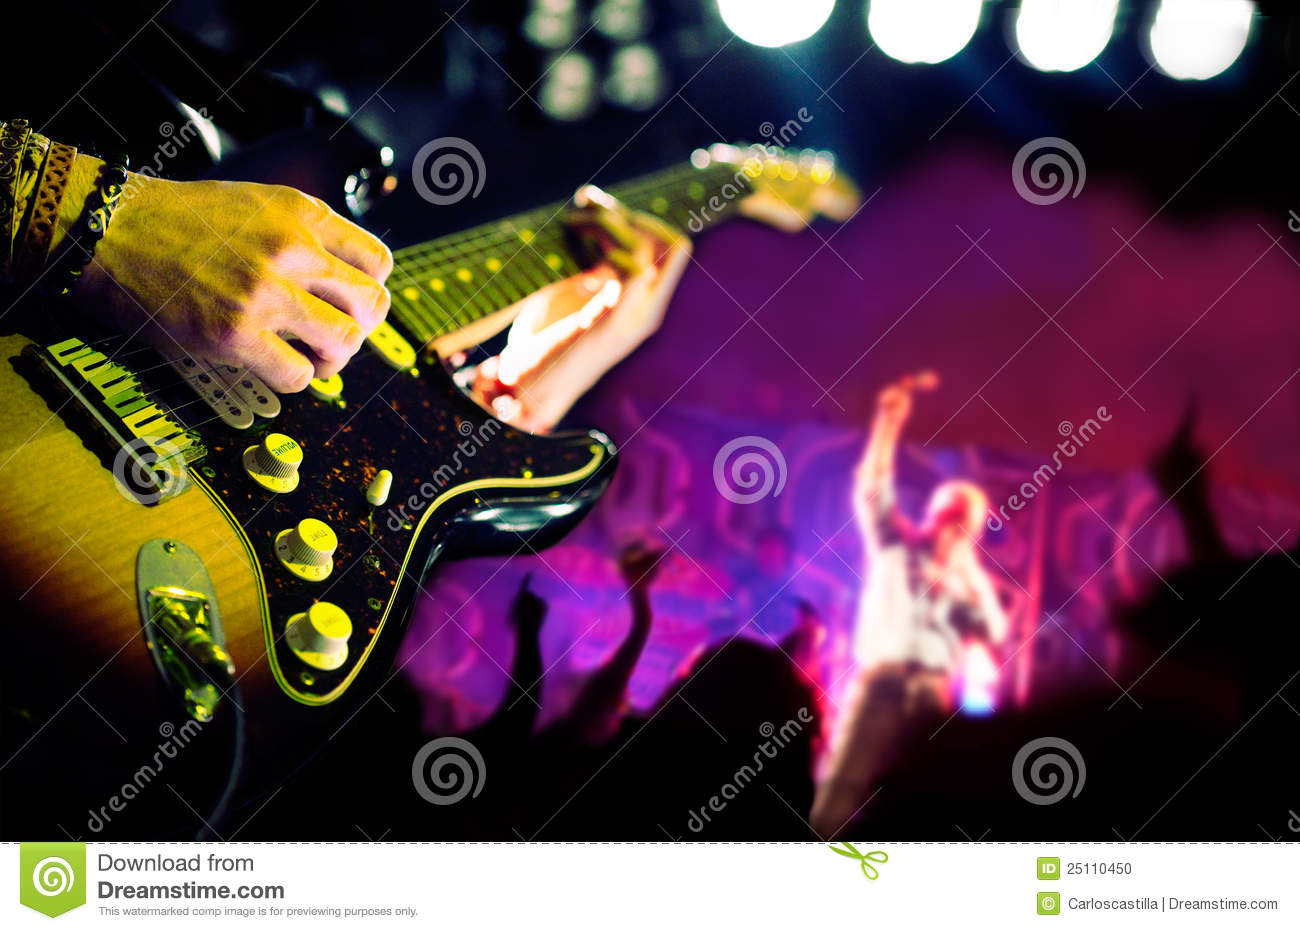 Live music background stock photo. Image of entertainment ...